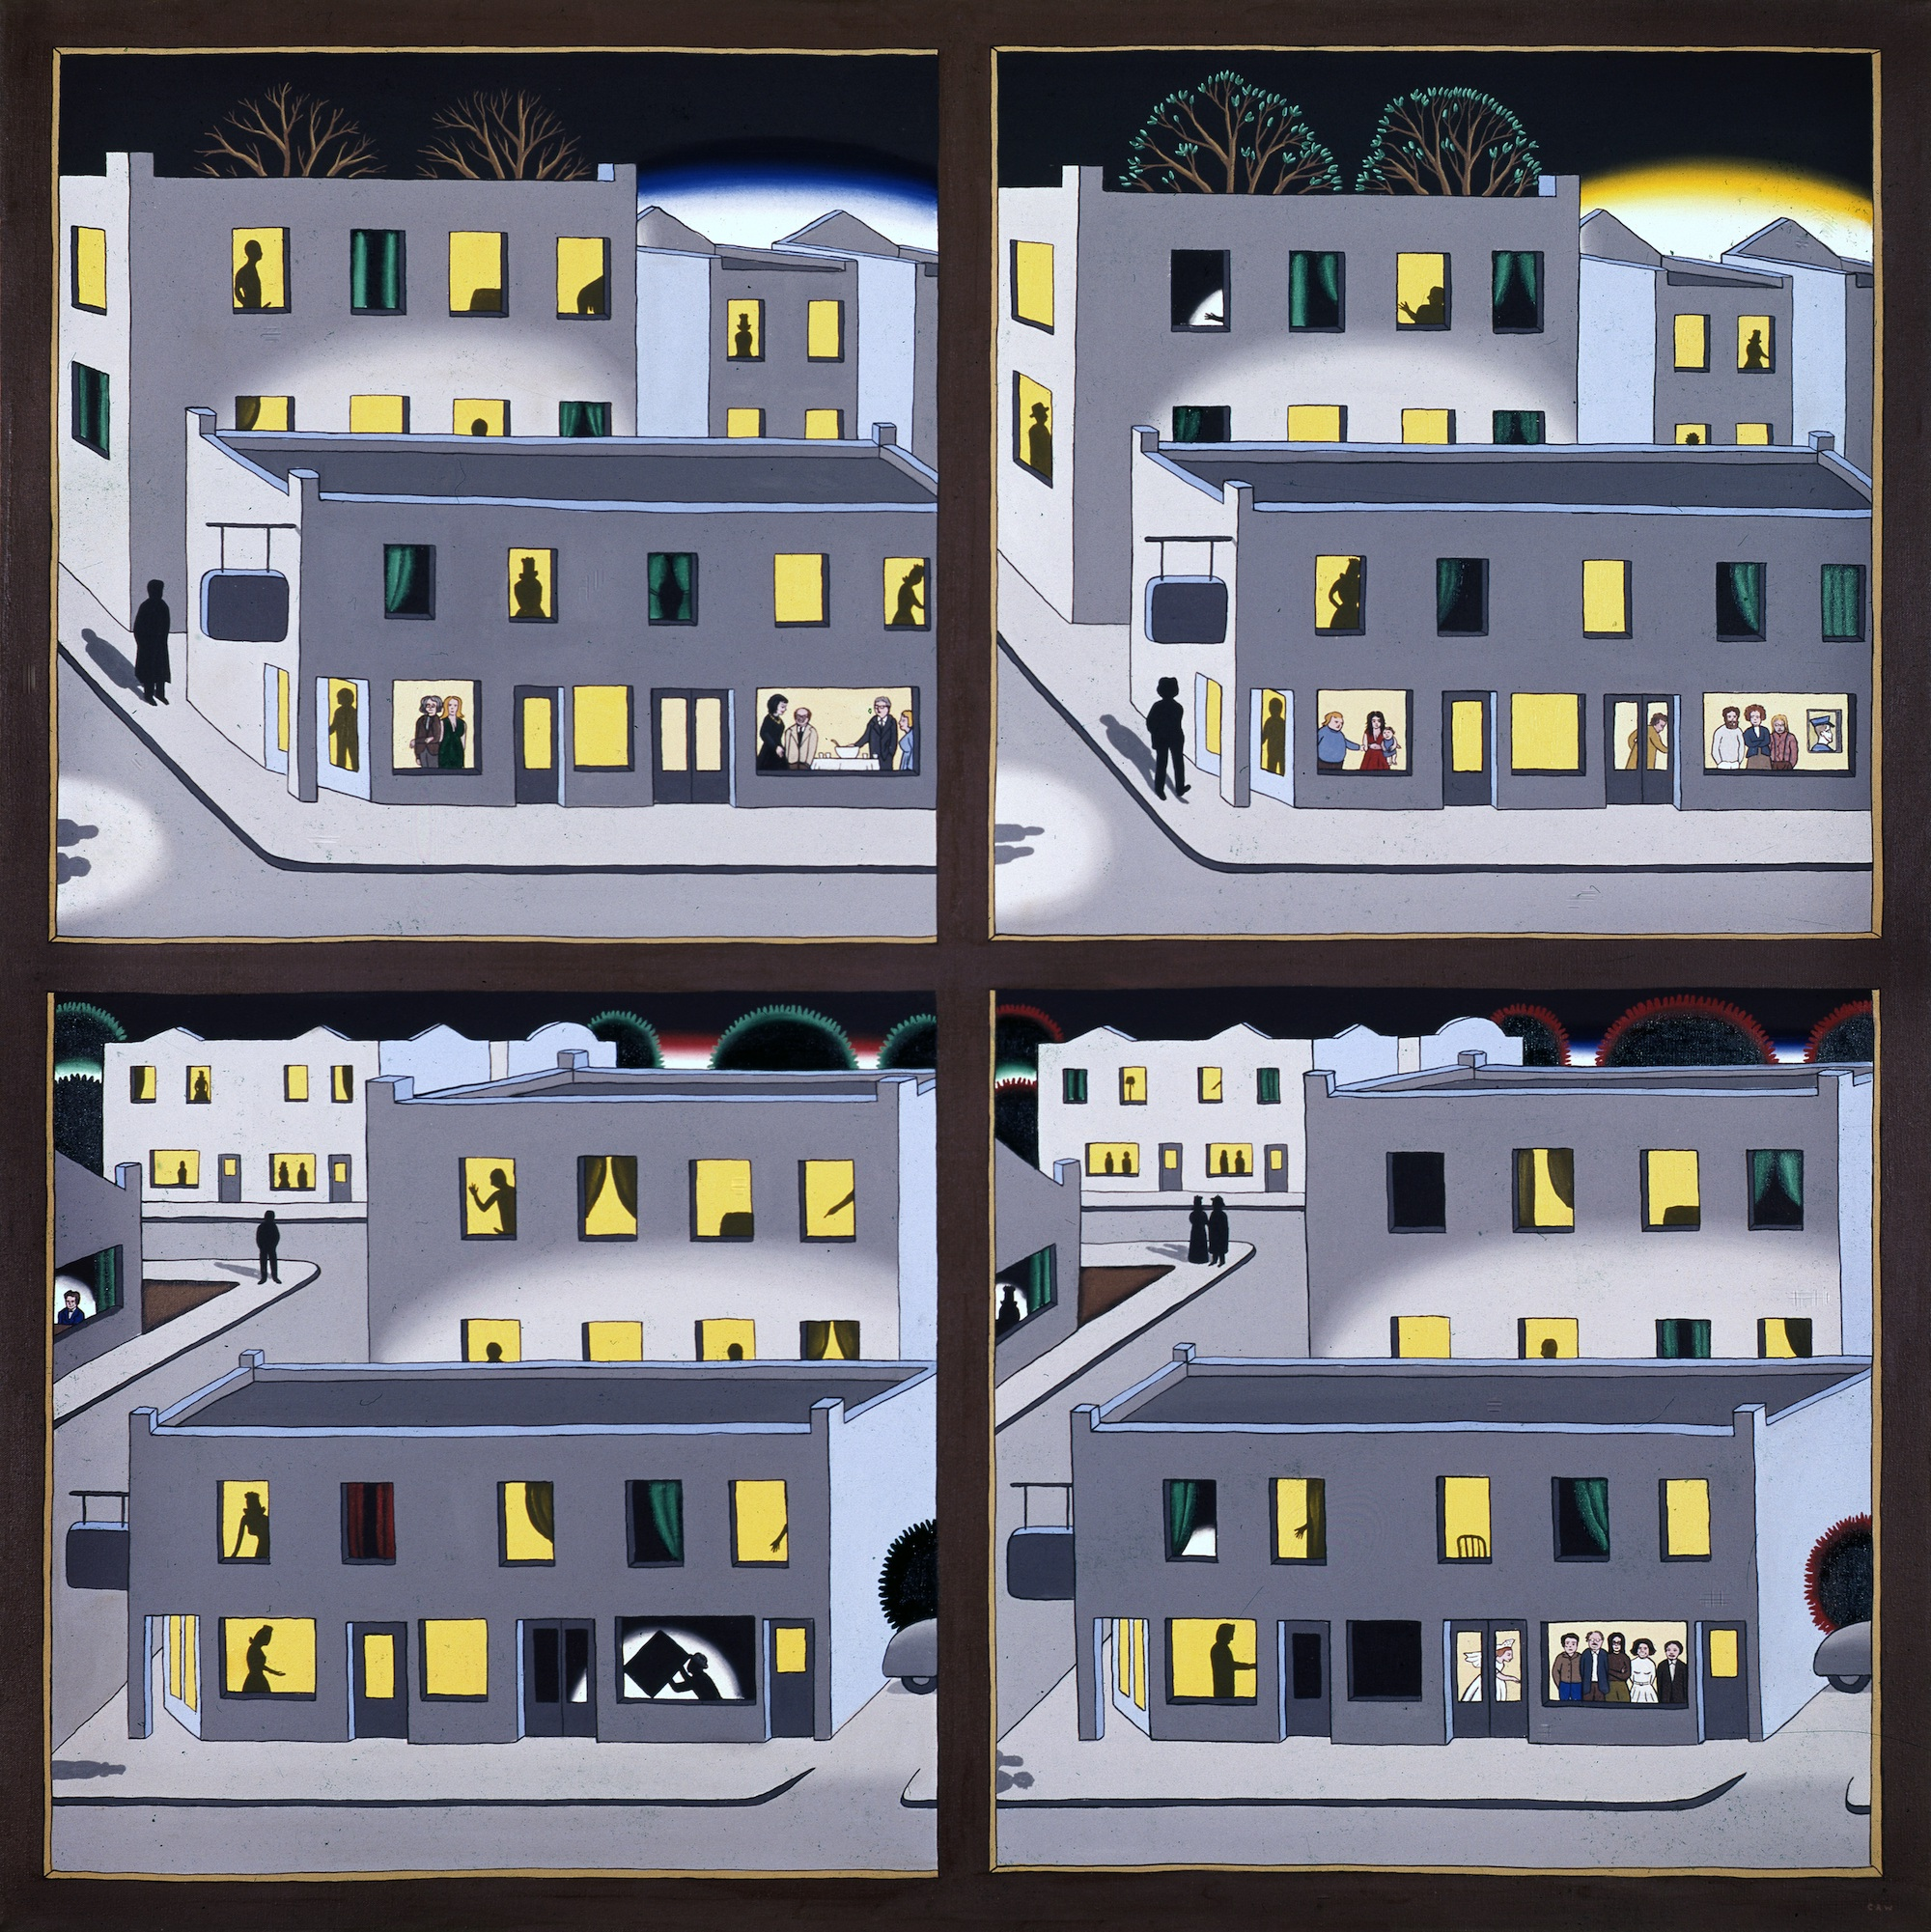 Roger Brown, The Four Seasons - A Benefit Painting of the Hyde Park Art Center, 1974 © The School of the Art Institute of Chicago and the Brown Family. Private collection, Courtesy McCormick Gallery, Chicago